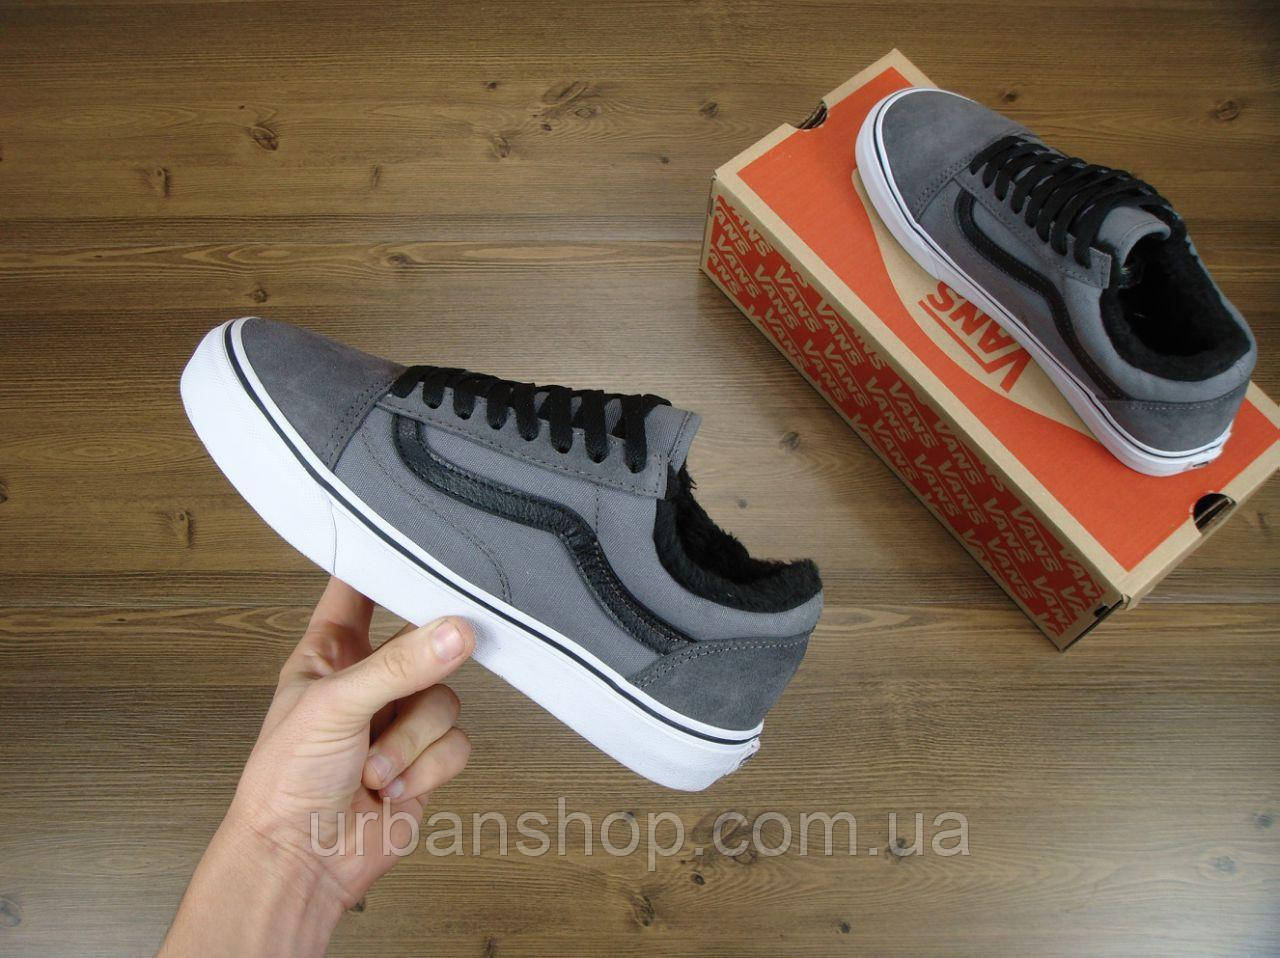 Кеды Vans Old Skool Winter Edition Grey ,зимние вансы с мехом